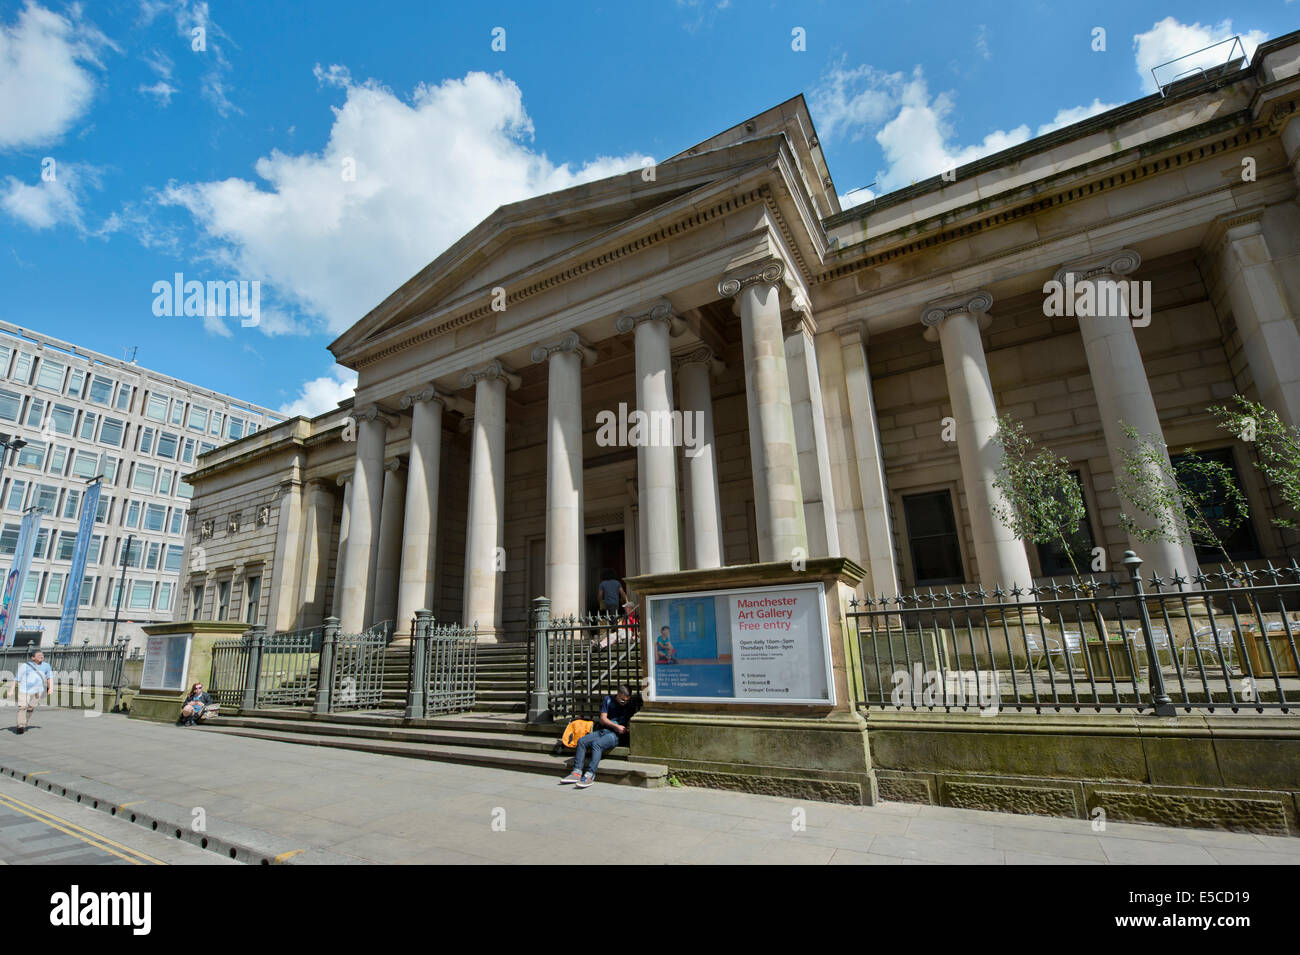 The Grade I listed Manchester Art Gallery building located on Mosley Street in the city centre of Manchester, UK. - Stock Image